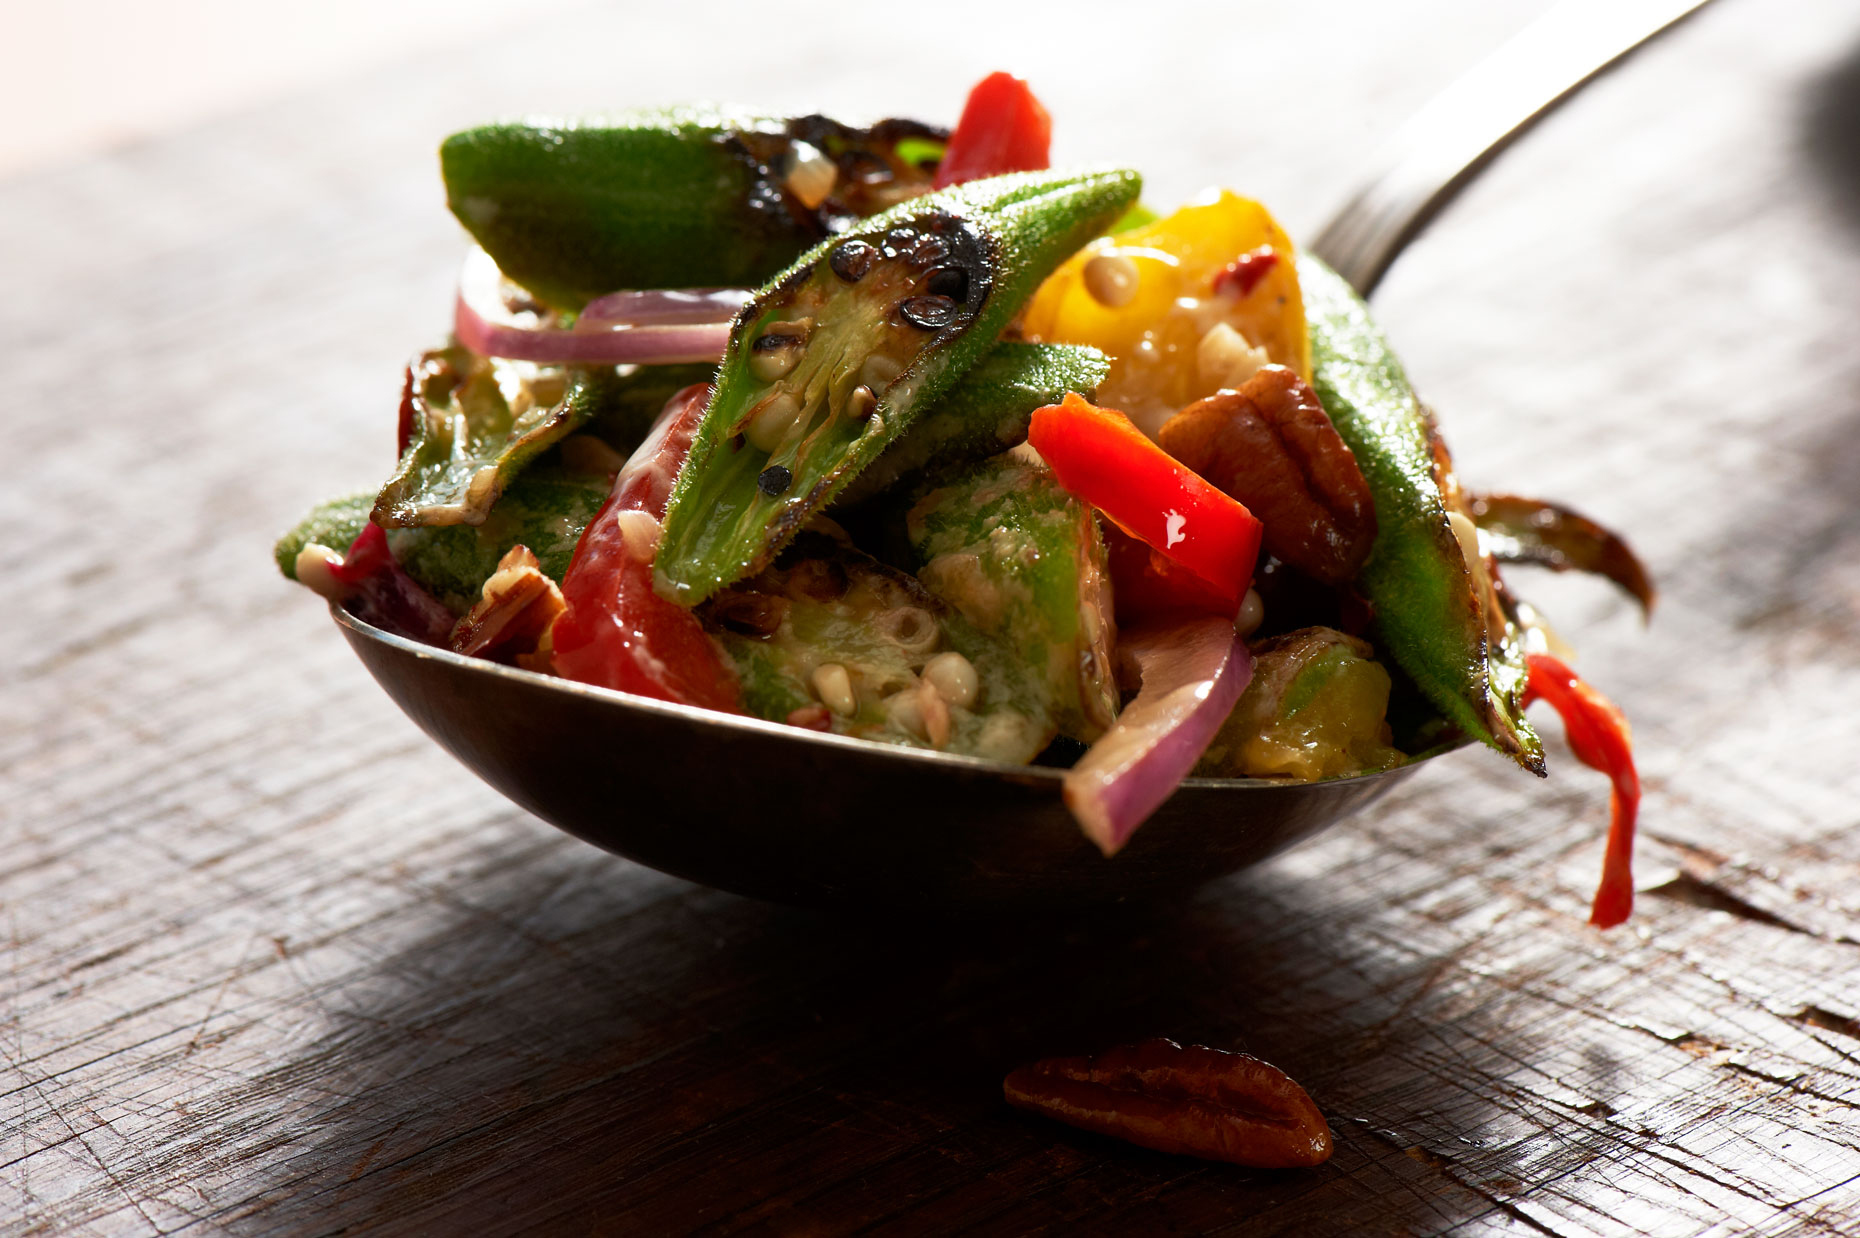 9-okra_tomato_pecan_salad_balsamic_mayonnaise0037_full